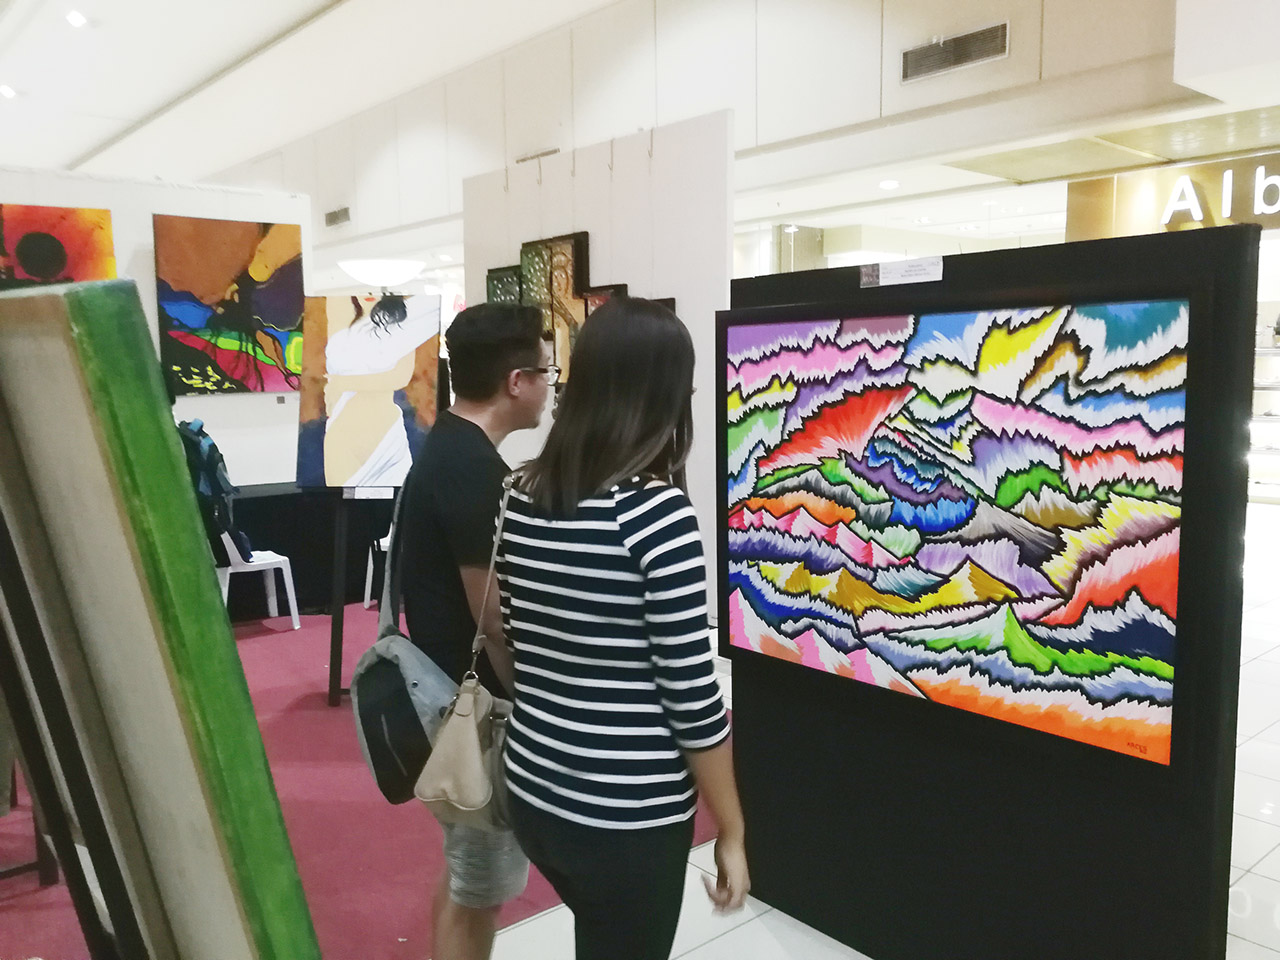 INCLUSIVE ART. Guests of the 'Primal' exhibit by Artsada Kagay-an Inc (AKI) view works of art by local artists. The exhibit aims to spread awareness about the realities faced by misrepresented and marginalized sectors in society. Photo by Angelo Lorenzo